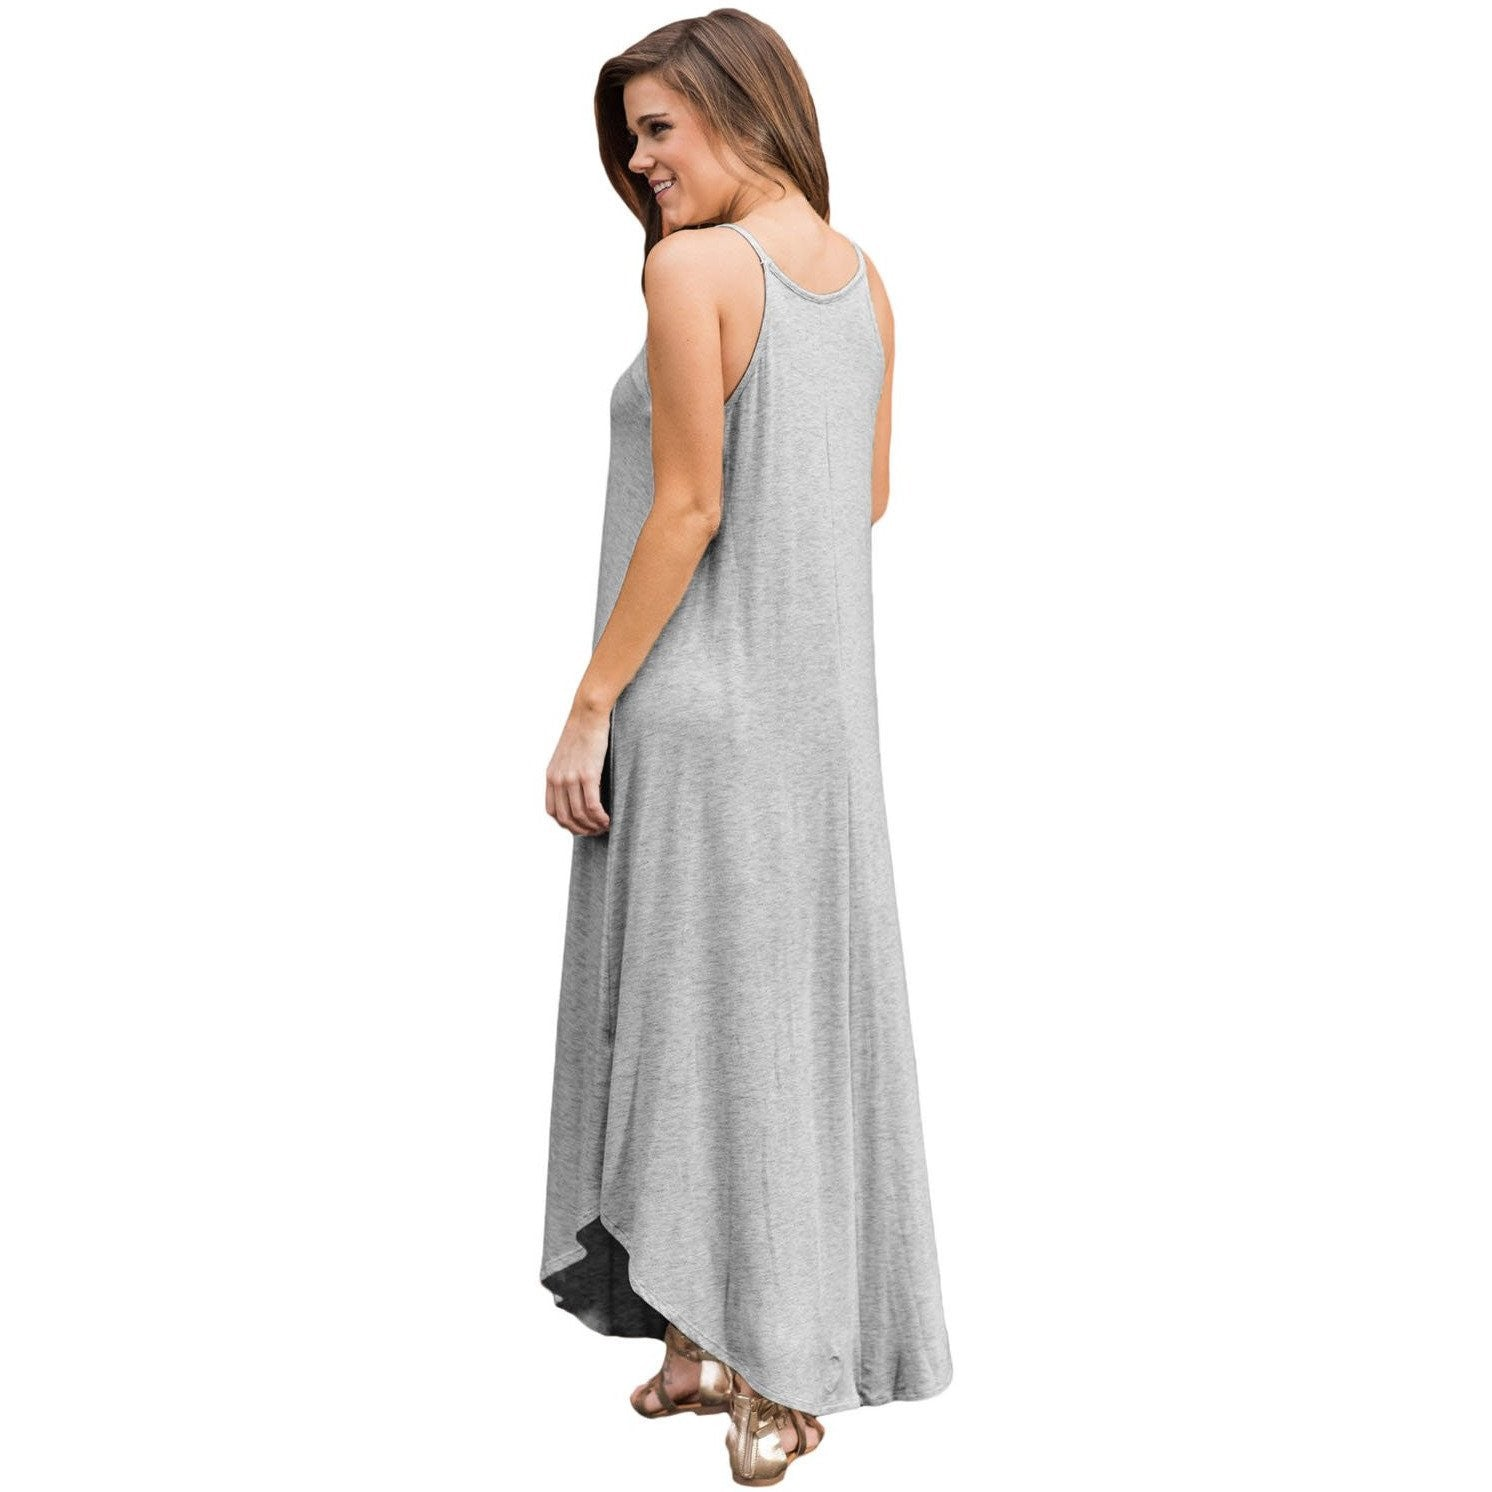 626faa7457f Light Gray Sexy Chic Sleeveless Maxi Dress - Maxi Dress